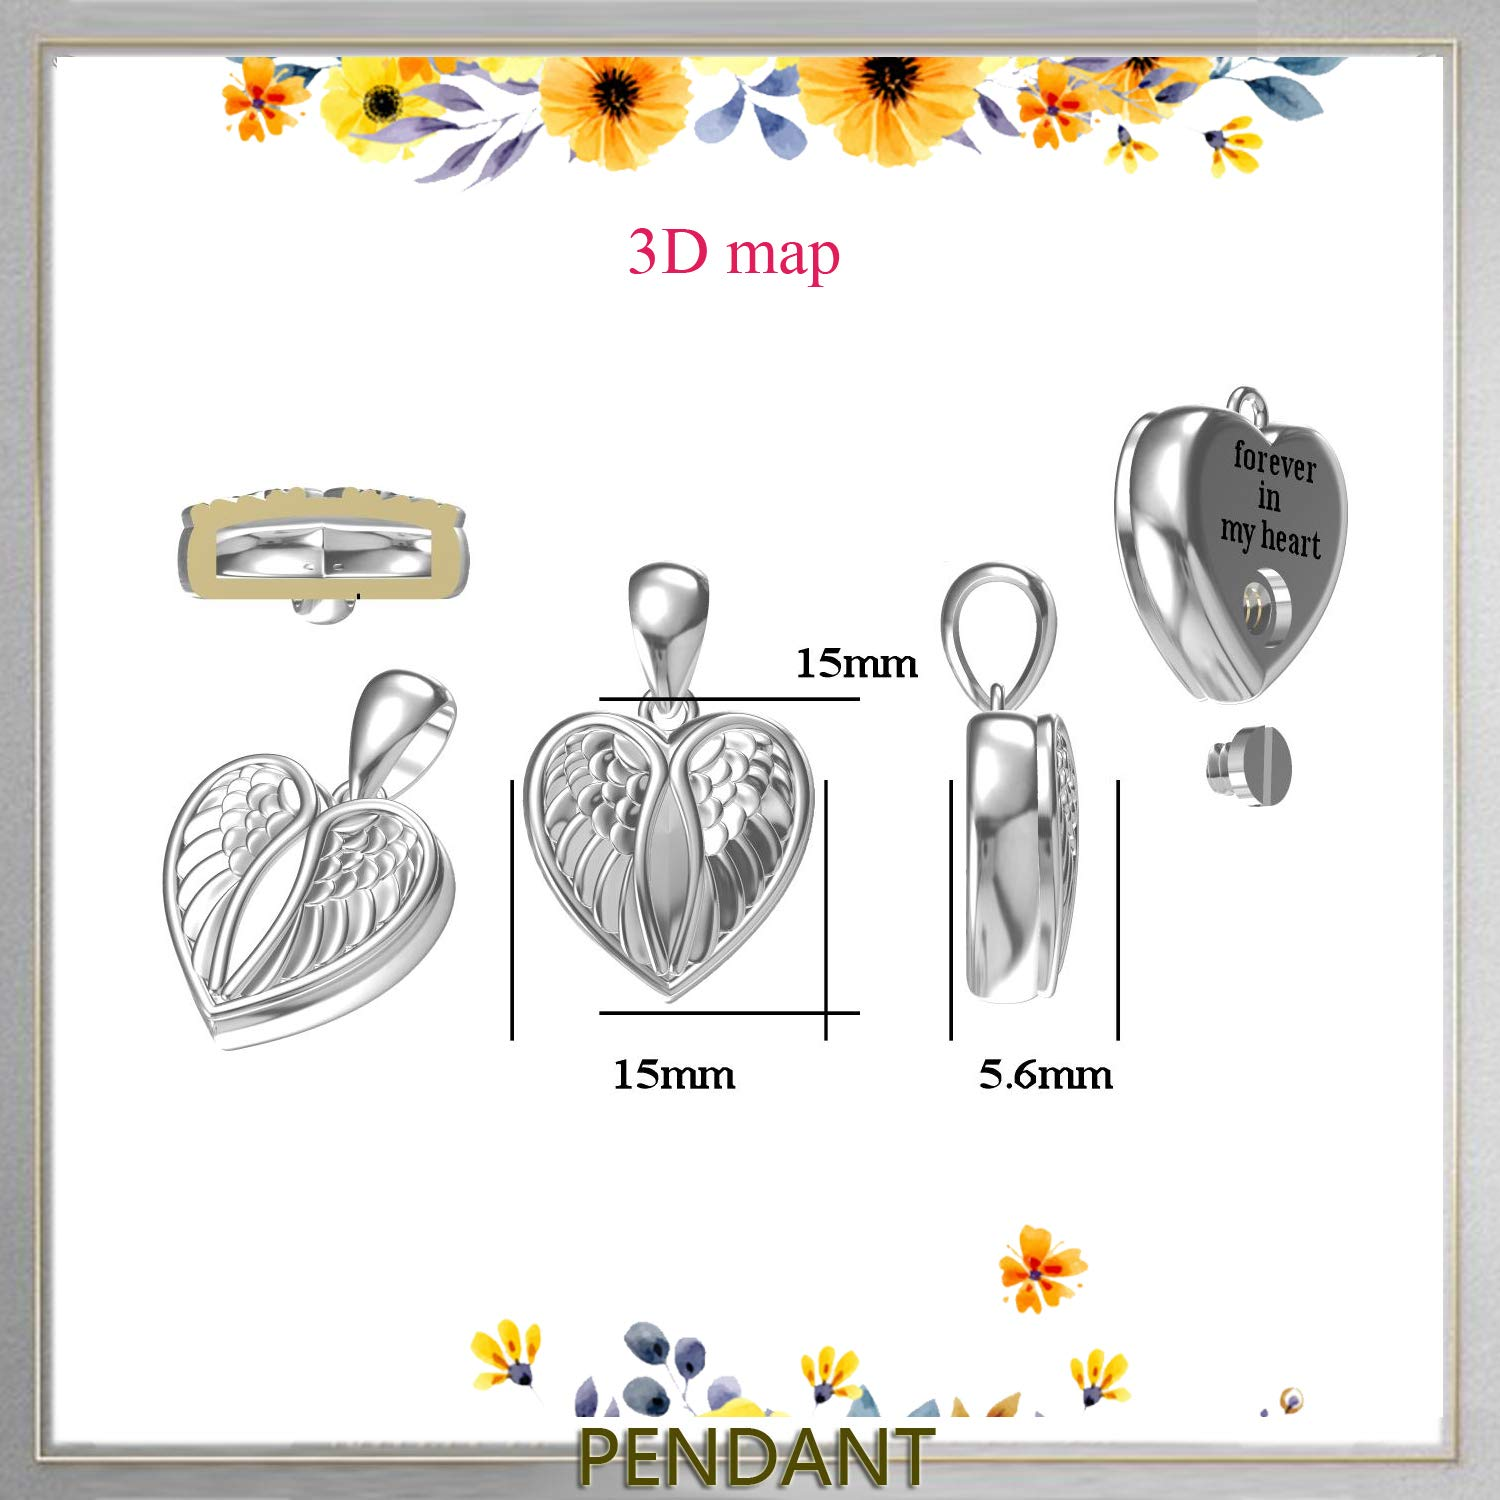 Forever in My Heart oGoodsunj 925 Sterling Silver Heart Angel Wings Cremation Jewelry Pendant Keepsake Urn Necklace for Ashes